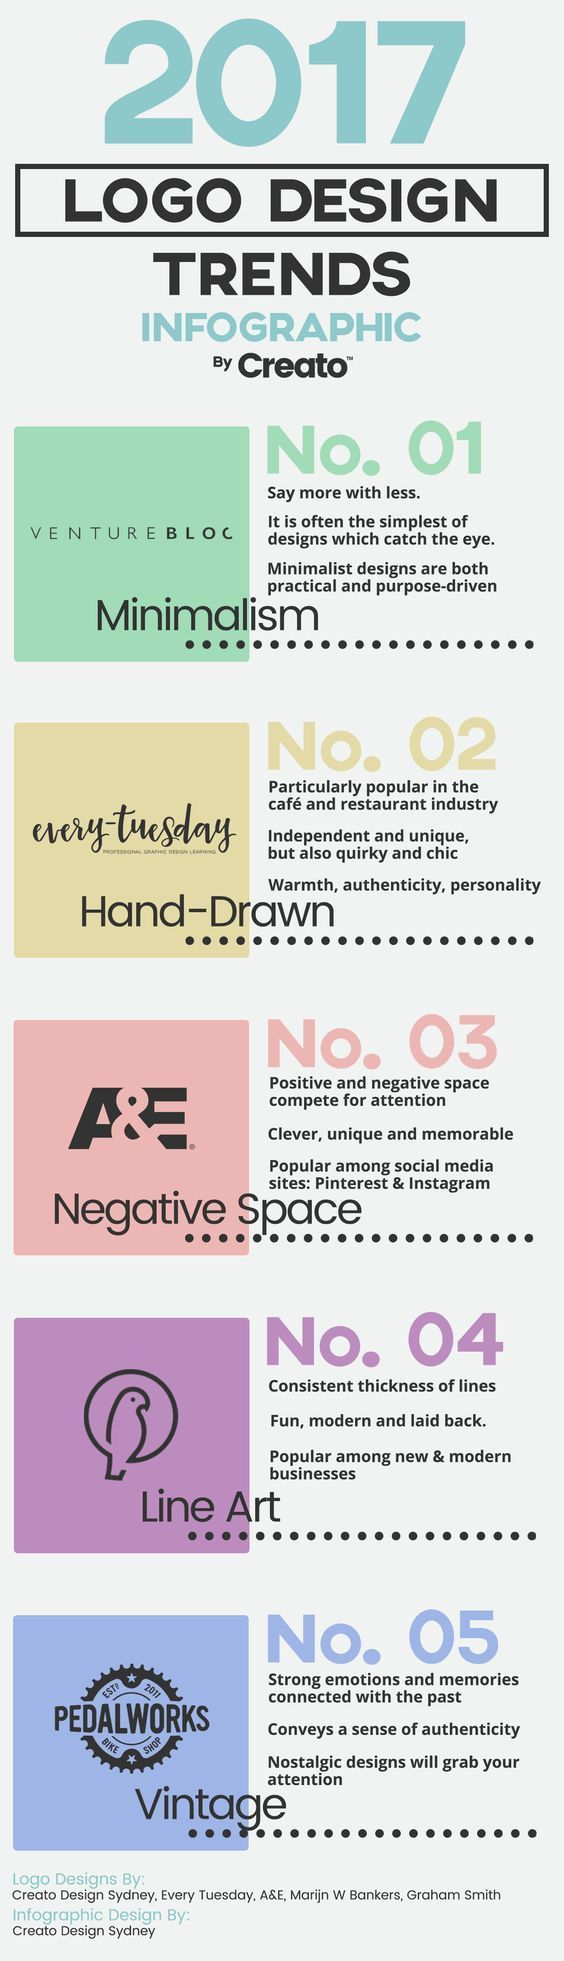 2017 Logo Design trends by www.creato.com.au